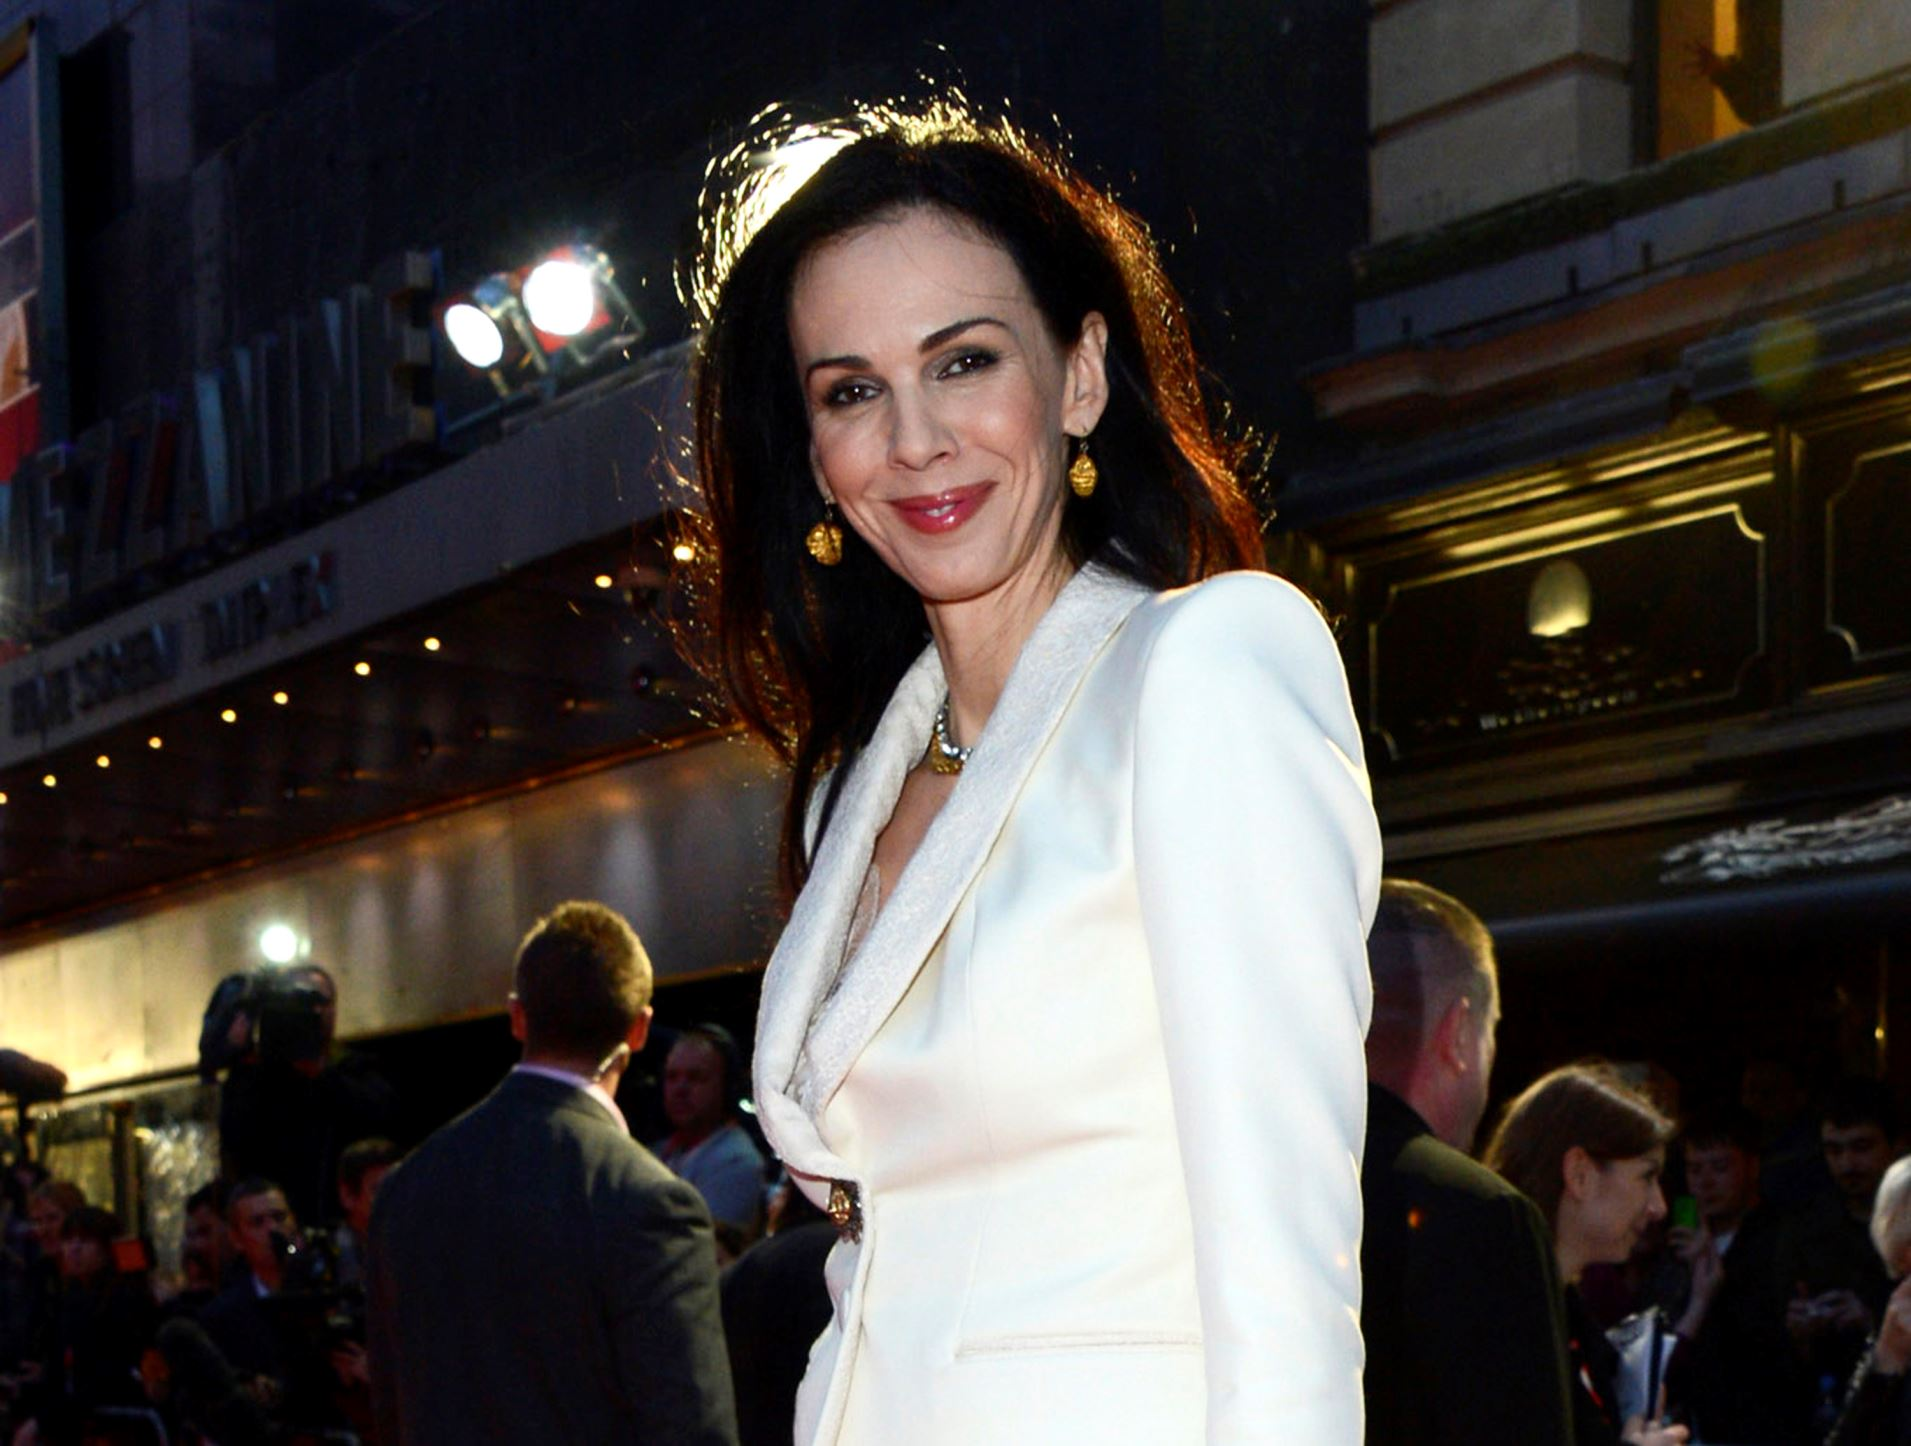 Noted fashion figure and girlfriend of musician Mick Jagger was found dead hanging by the door handle with a scarf. The law enforcement officials determined the cause of death as suicide. She was 49.